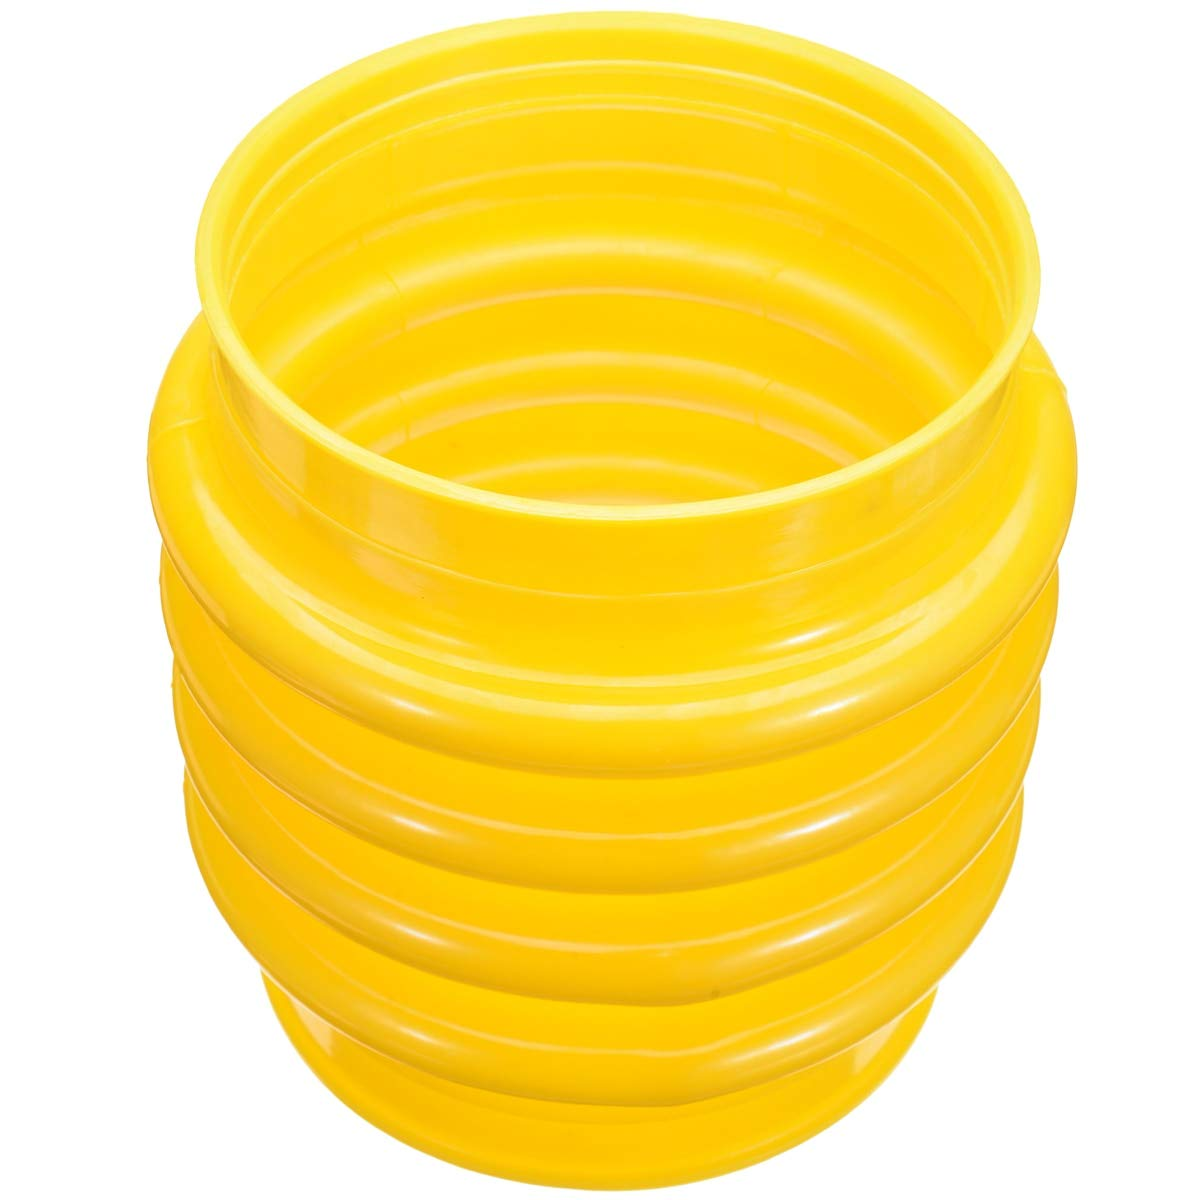 DORATA - New 17.5cm Jumping Jack Bellows Boot Yellow For Wacker Rammer Compactor Tamper Power Tools Accessories